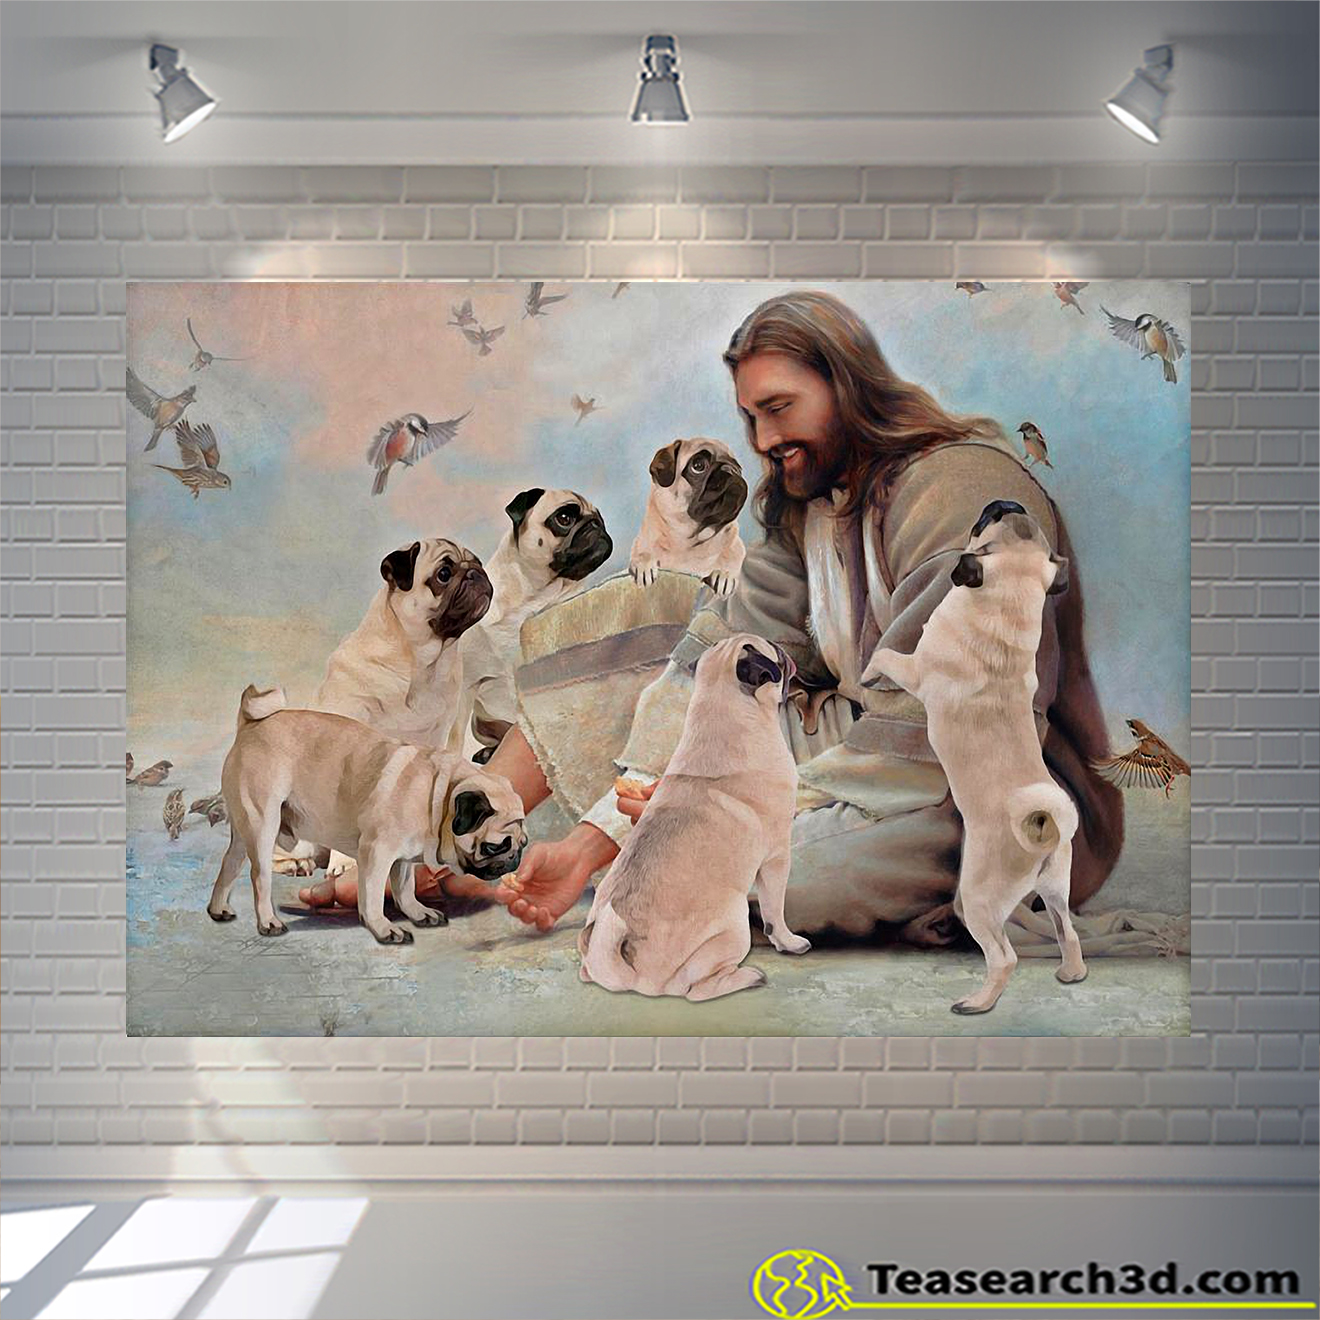 God surrounded by Pug angels poster A2